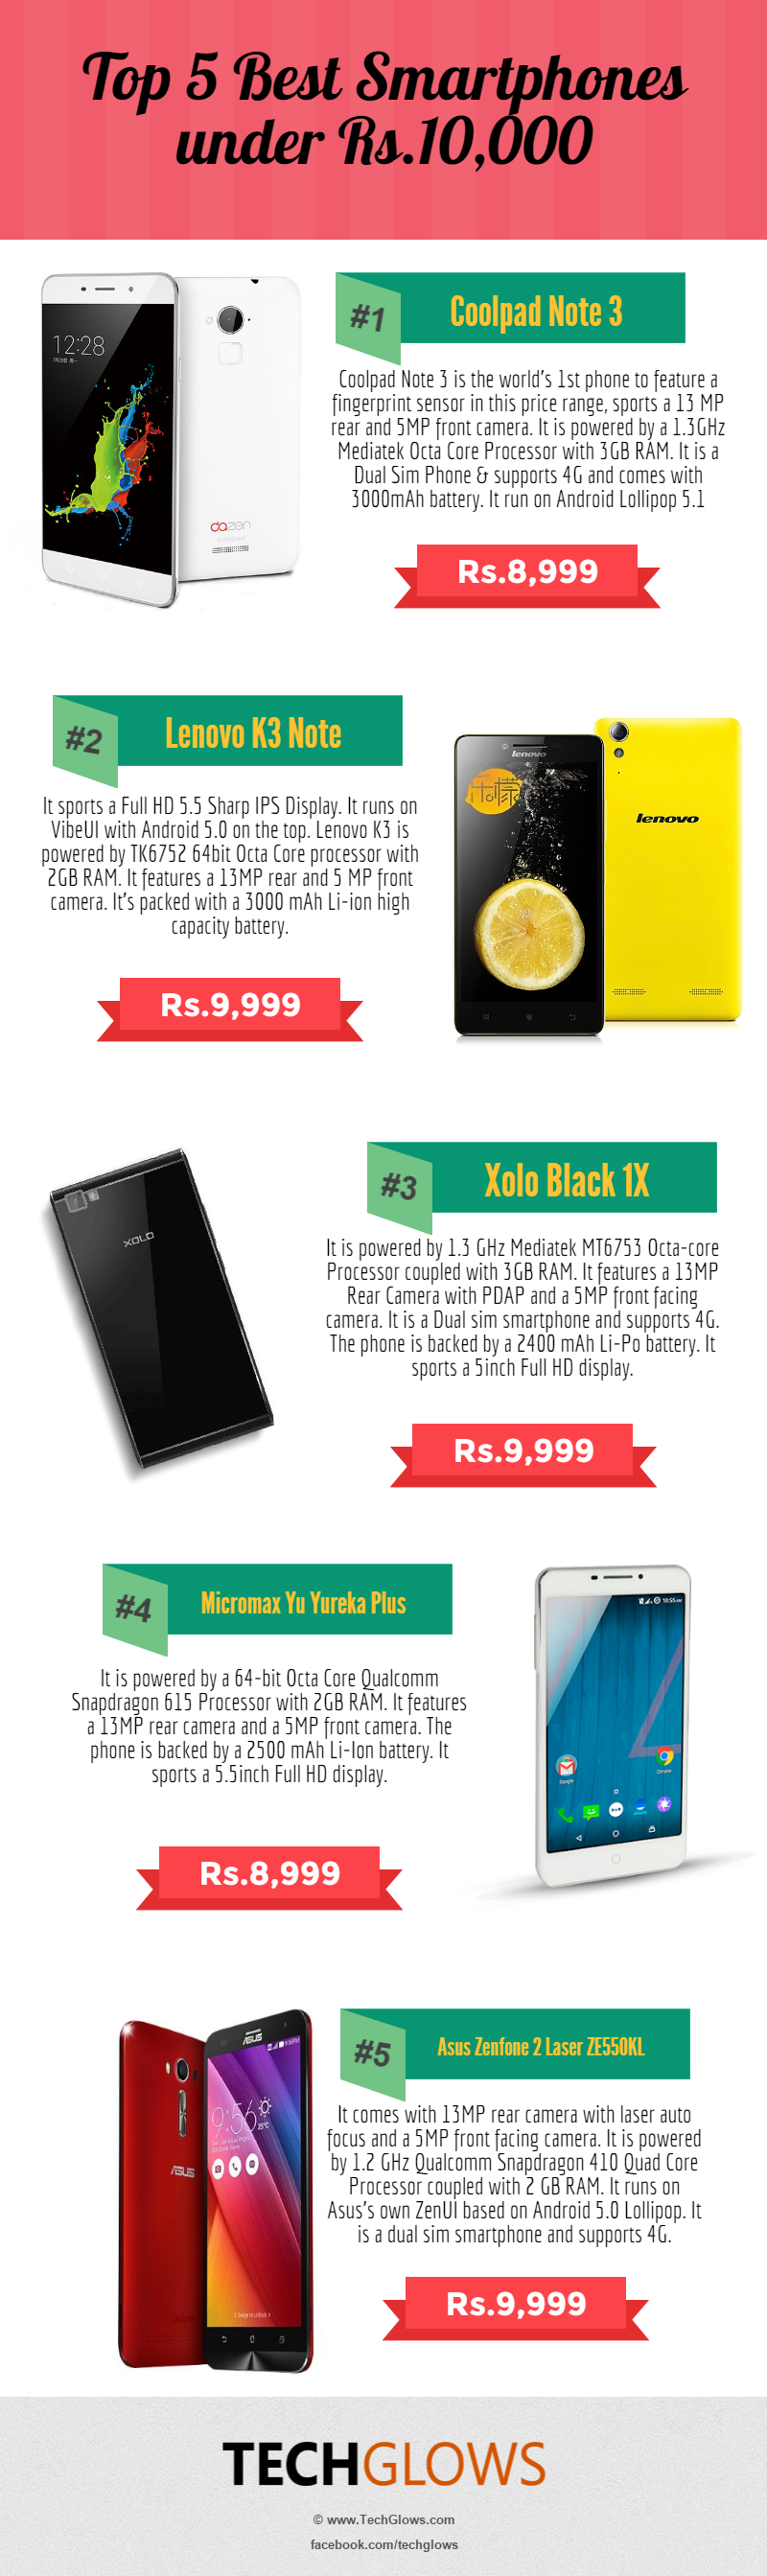 top 5 smartphones under 10000rs